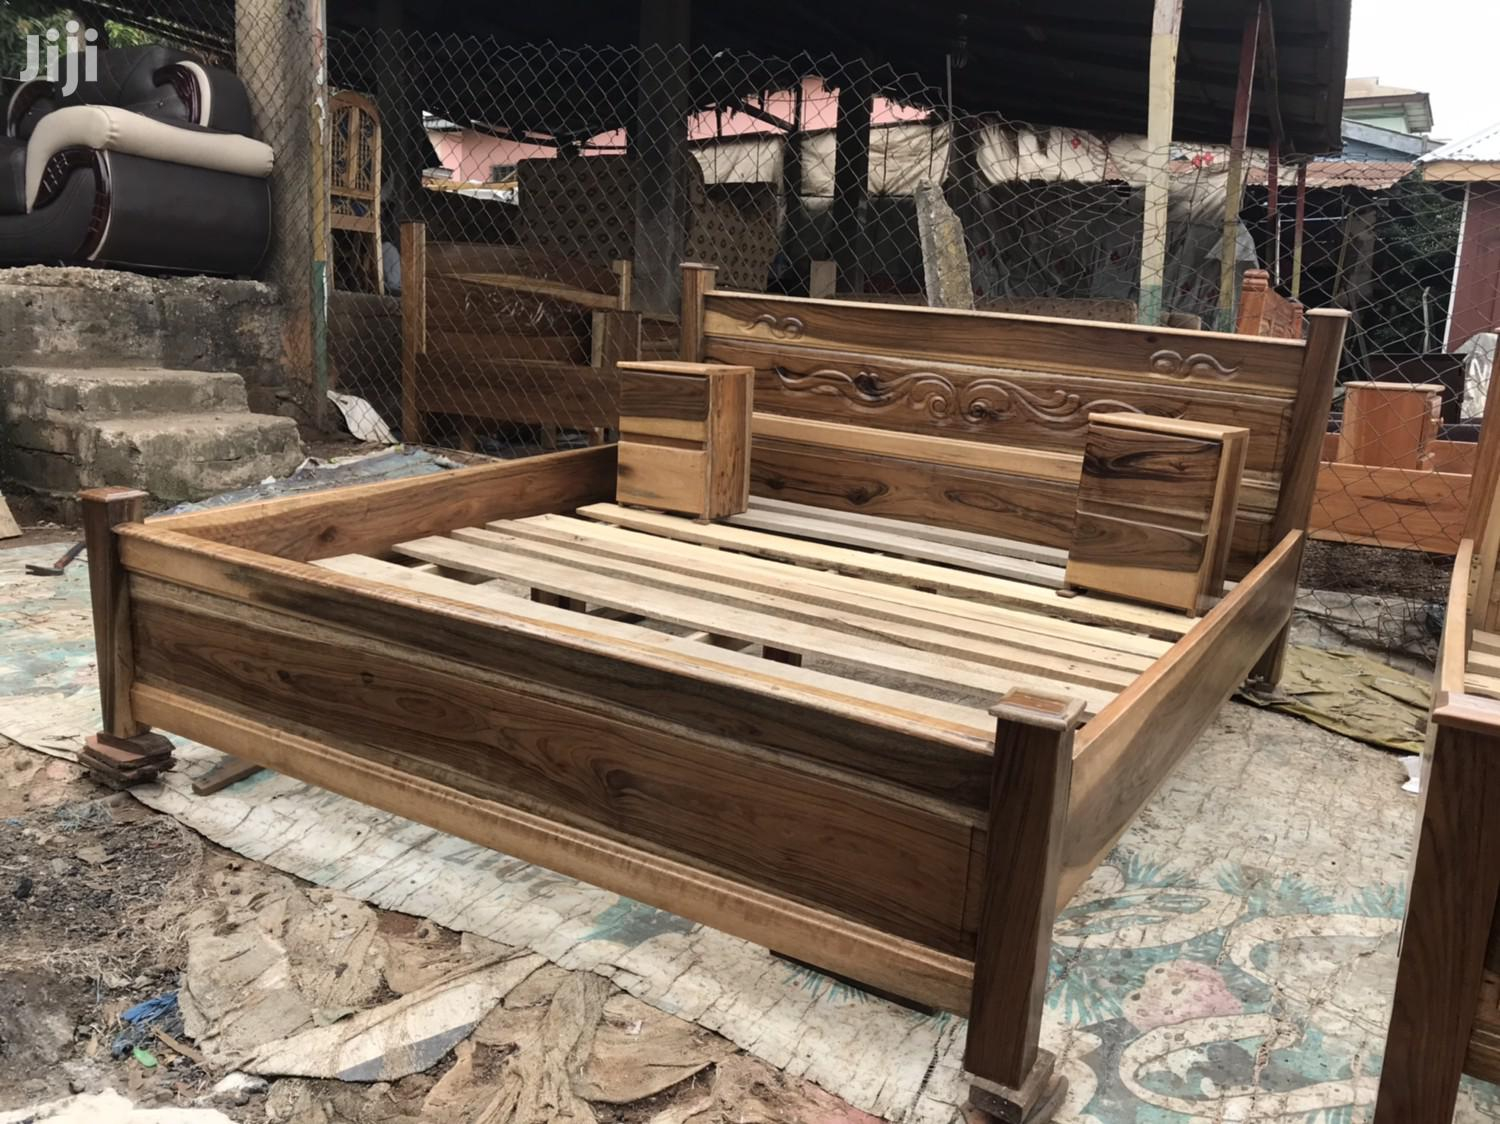 Queen Size Bed | Furniture for sale in Kanda Estate, Greater Accra, Ghana